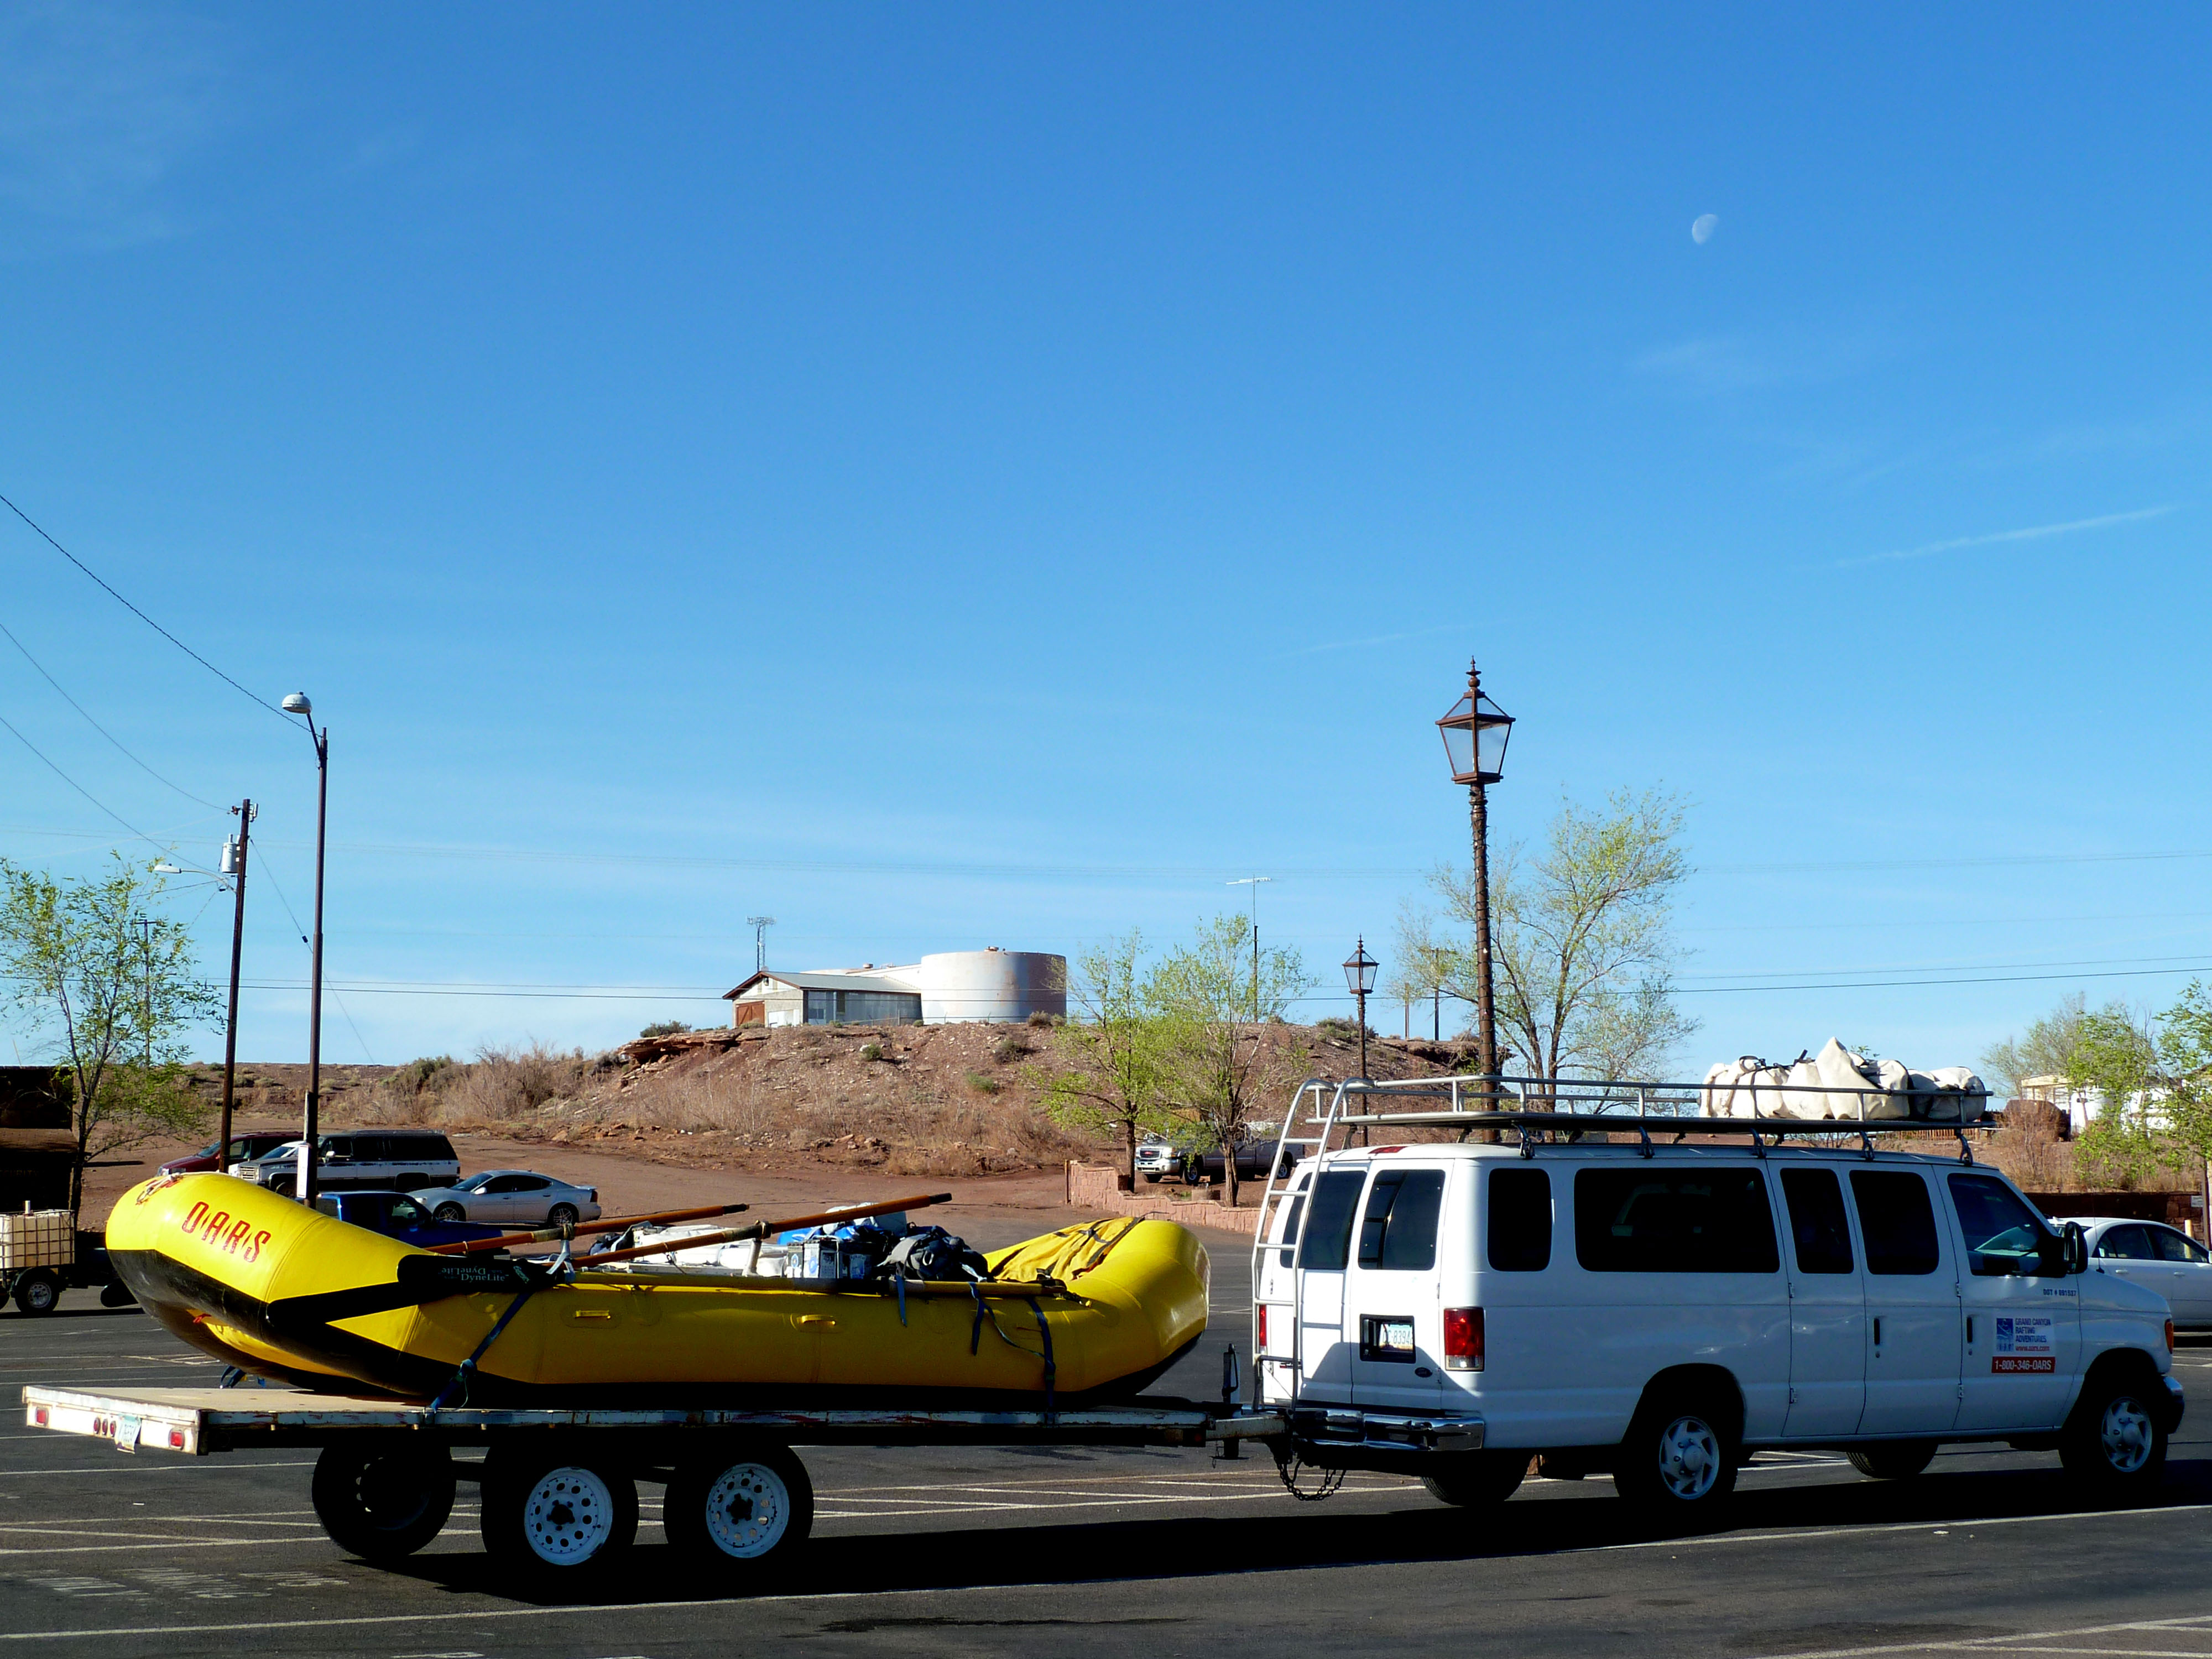 Our van and raft, at Cameron Trading Post